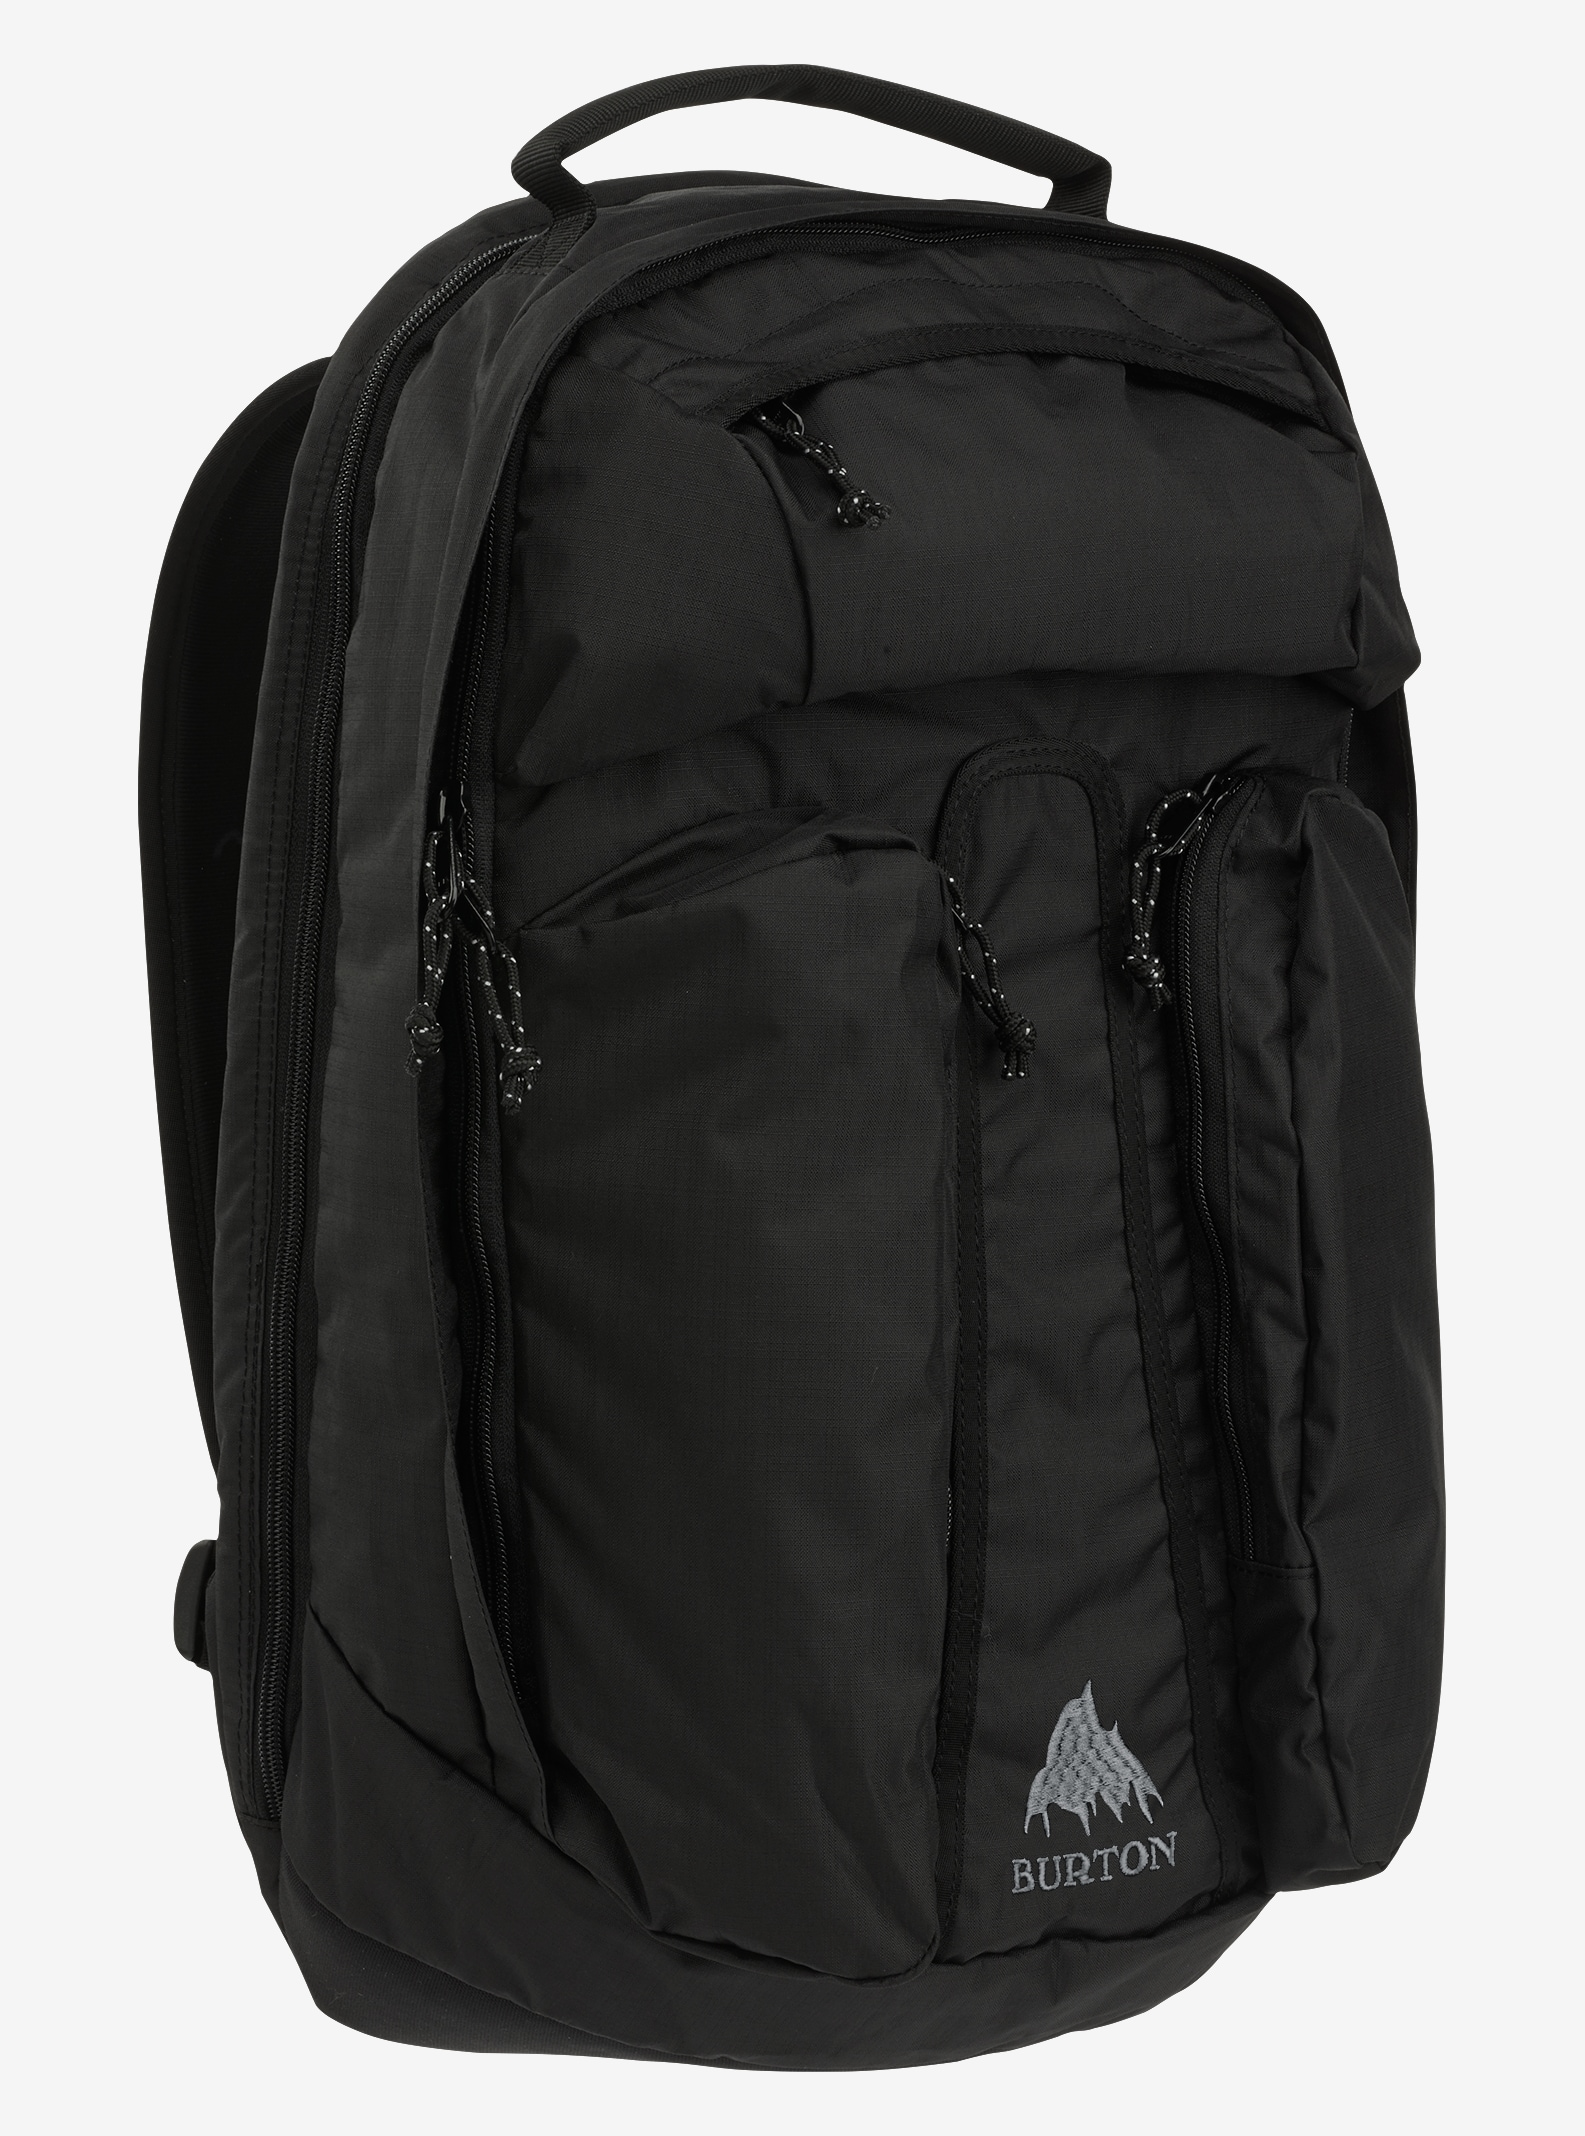 Burton - Sac à dos Curbshark affichage en True Black Heather Twill